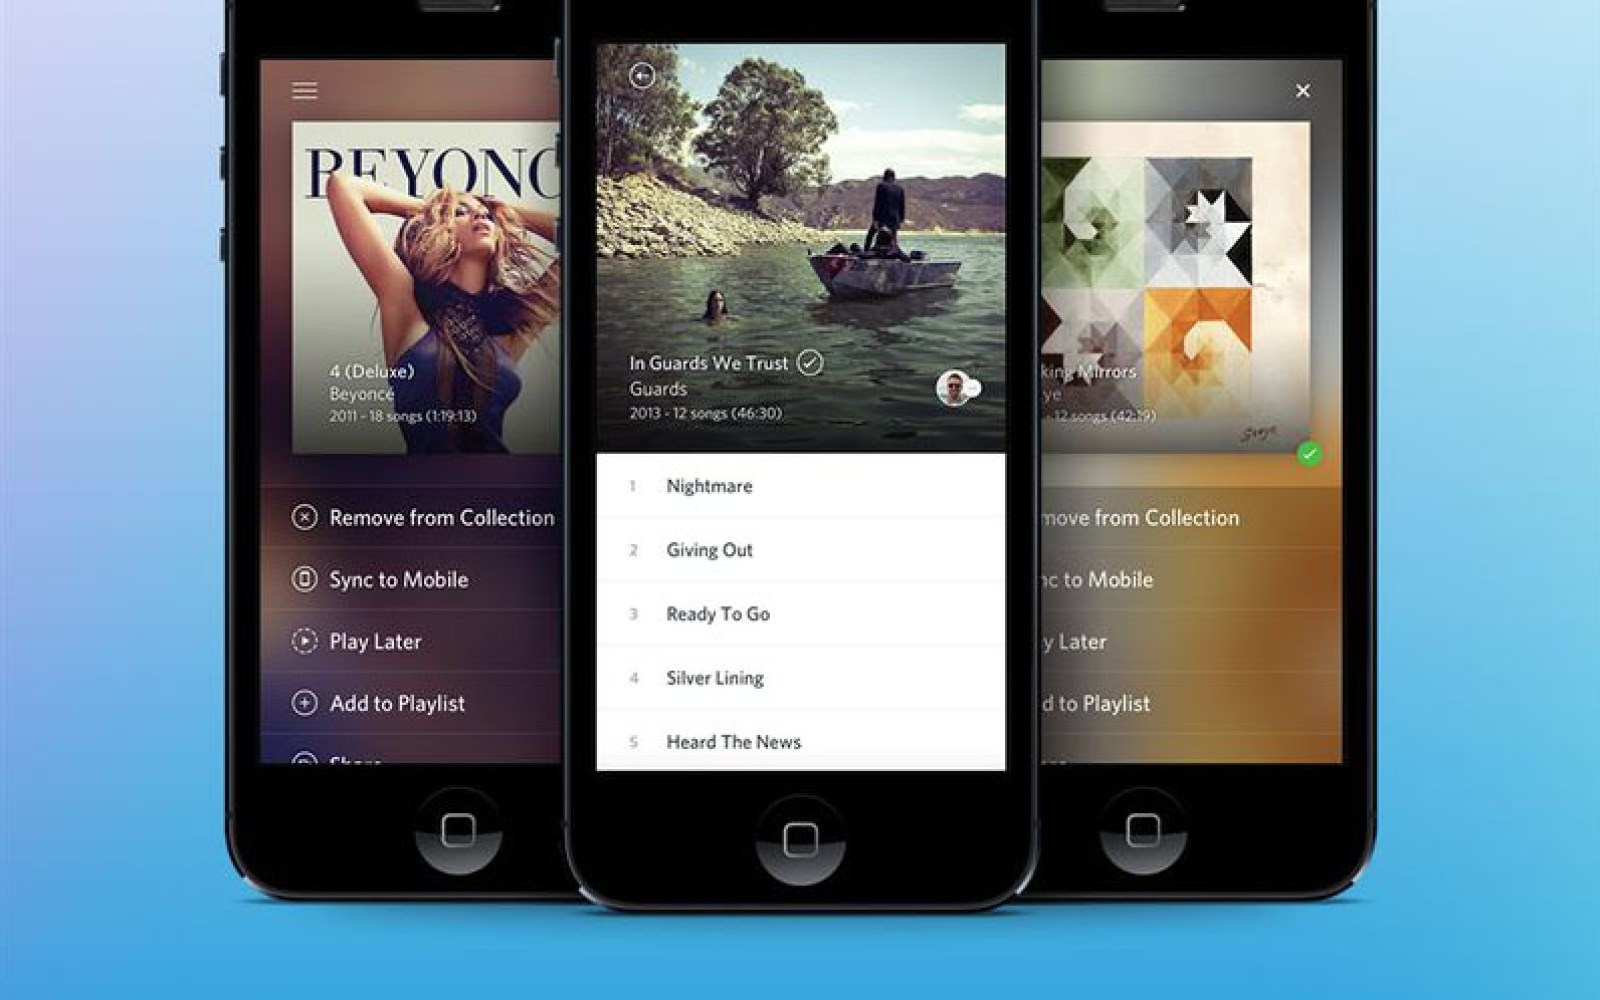 iTunes Radio gets new competition as Rdio iOS app offers free personalized stations